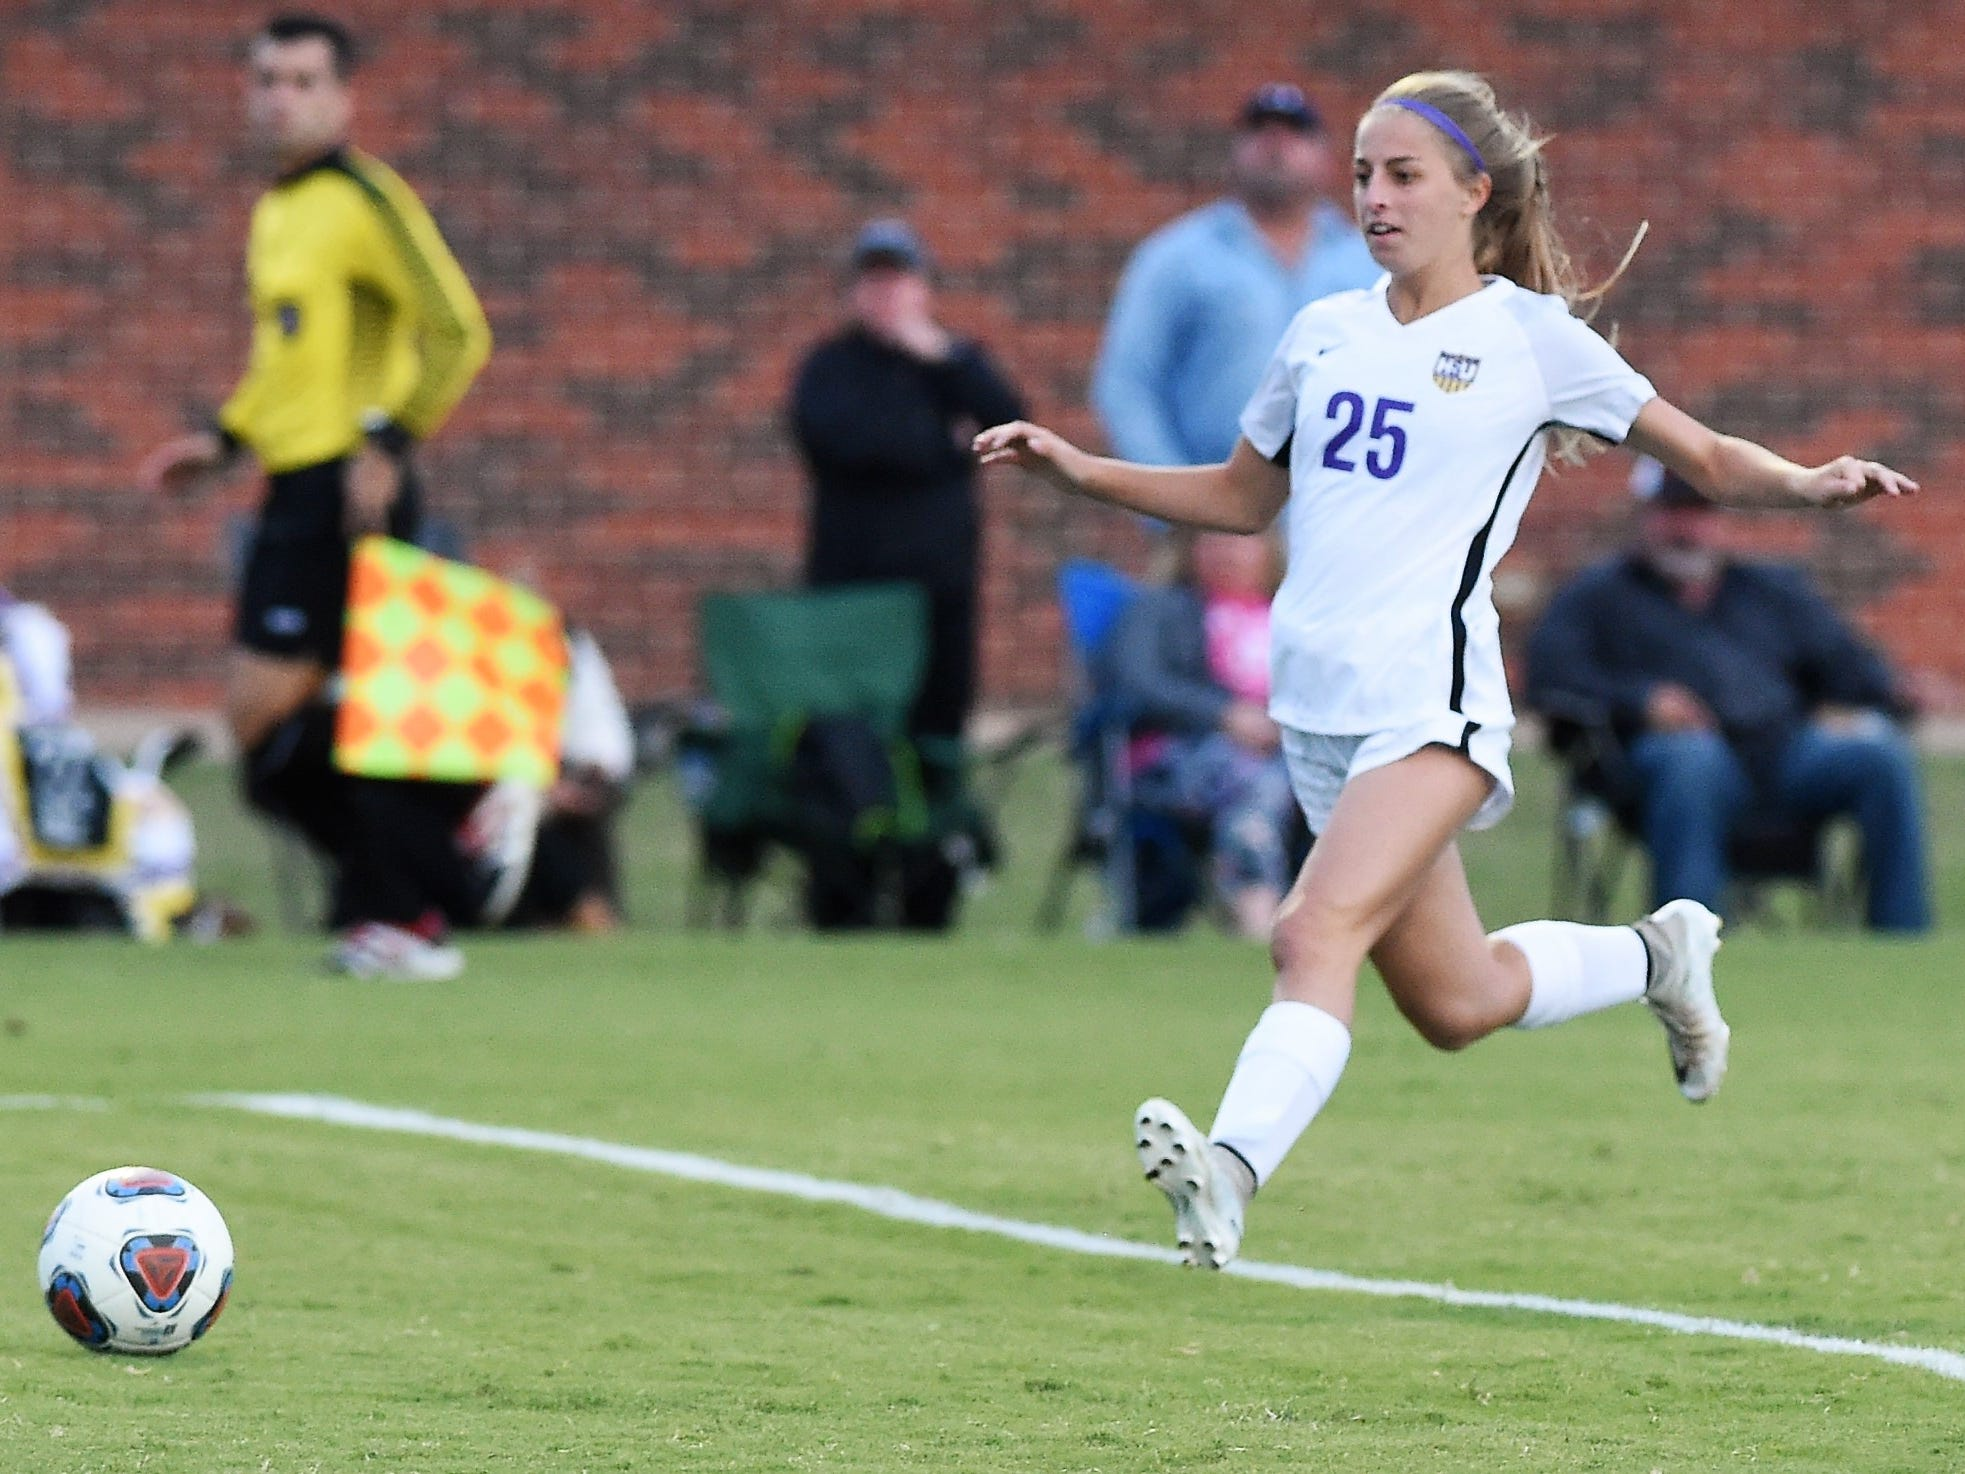 Hardin-Simmons midfielder Michaela Sabrsula (25) tries to run the ball down against Howard Payne at the HSU Soccer Complex on Thursday, Oct. 11, 2018. The Cowgirls won 4-1.